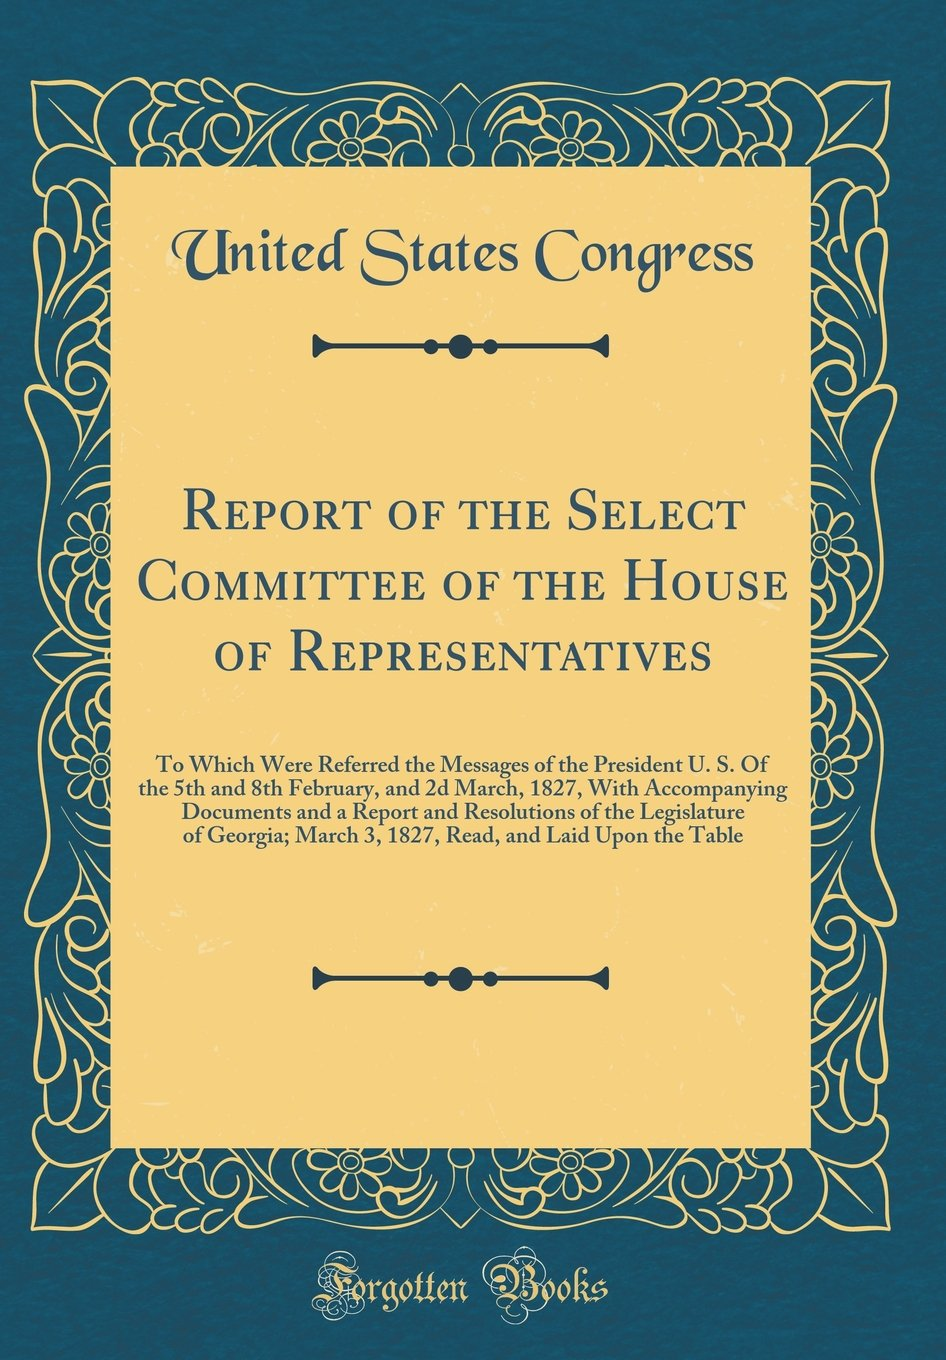 Read Online Report of the Select Committee of the House of Representatives: To Which Were Referred the Messages of the President U. S. of the 5th and 8th ... and Resolutions of the Legislature of Geor pdf